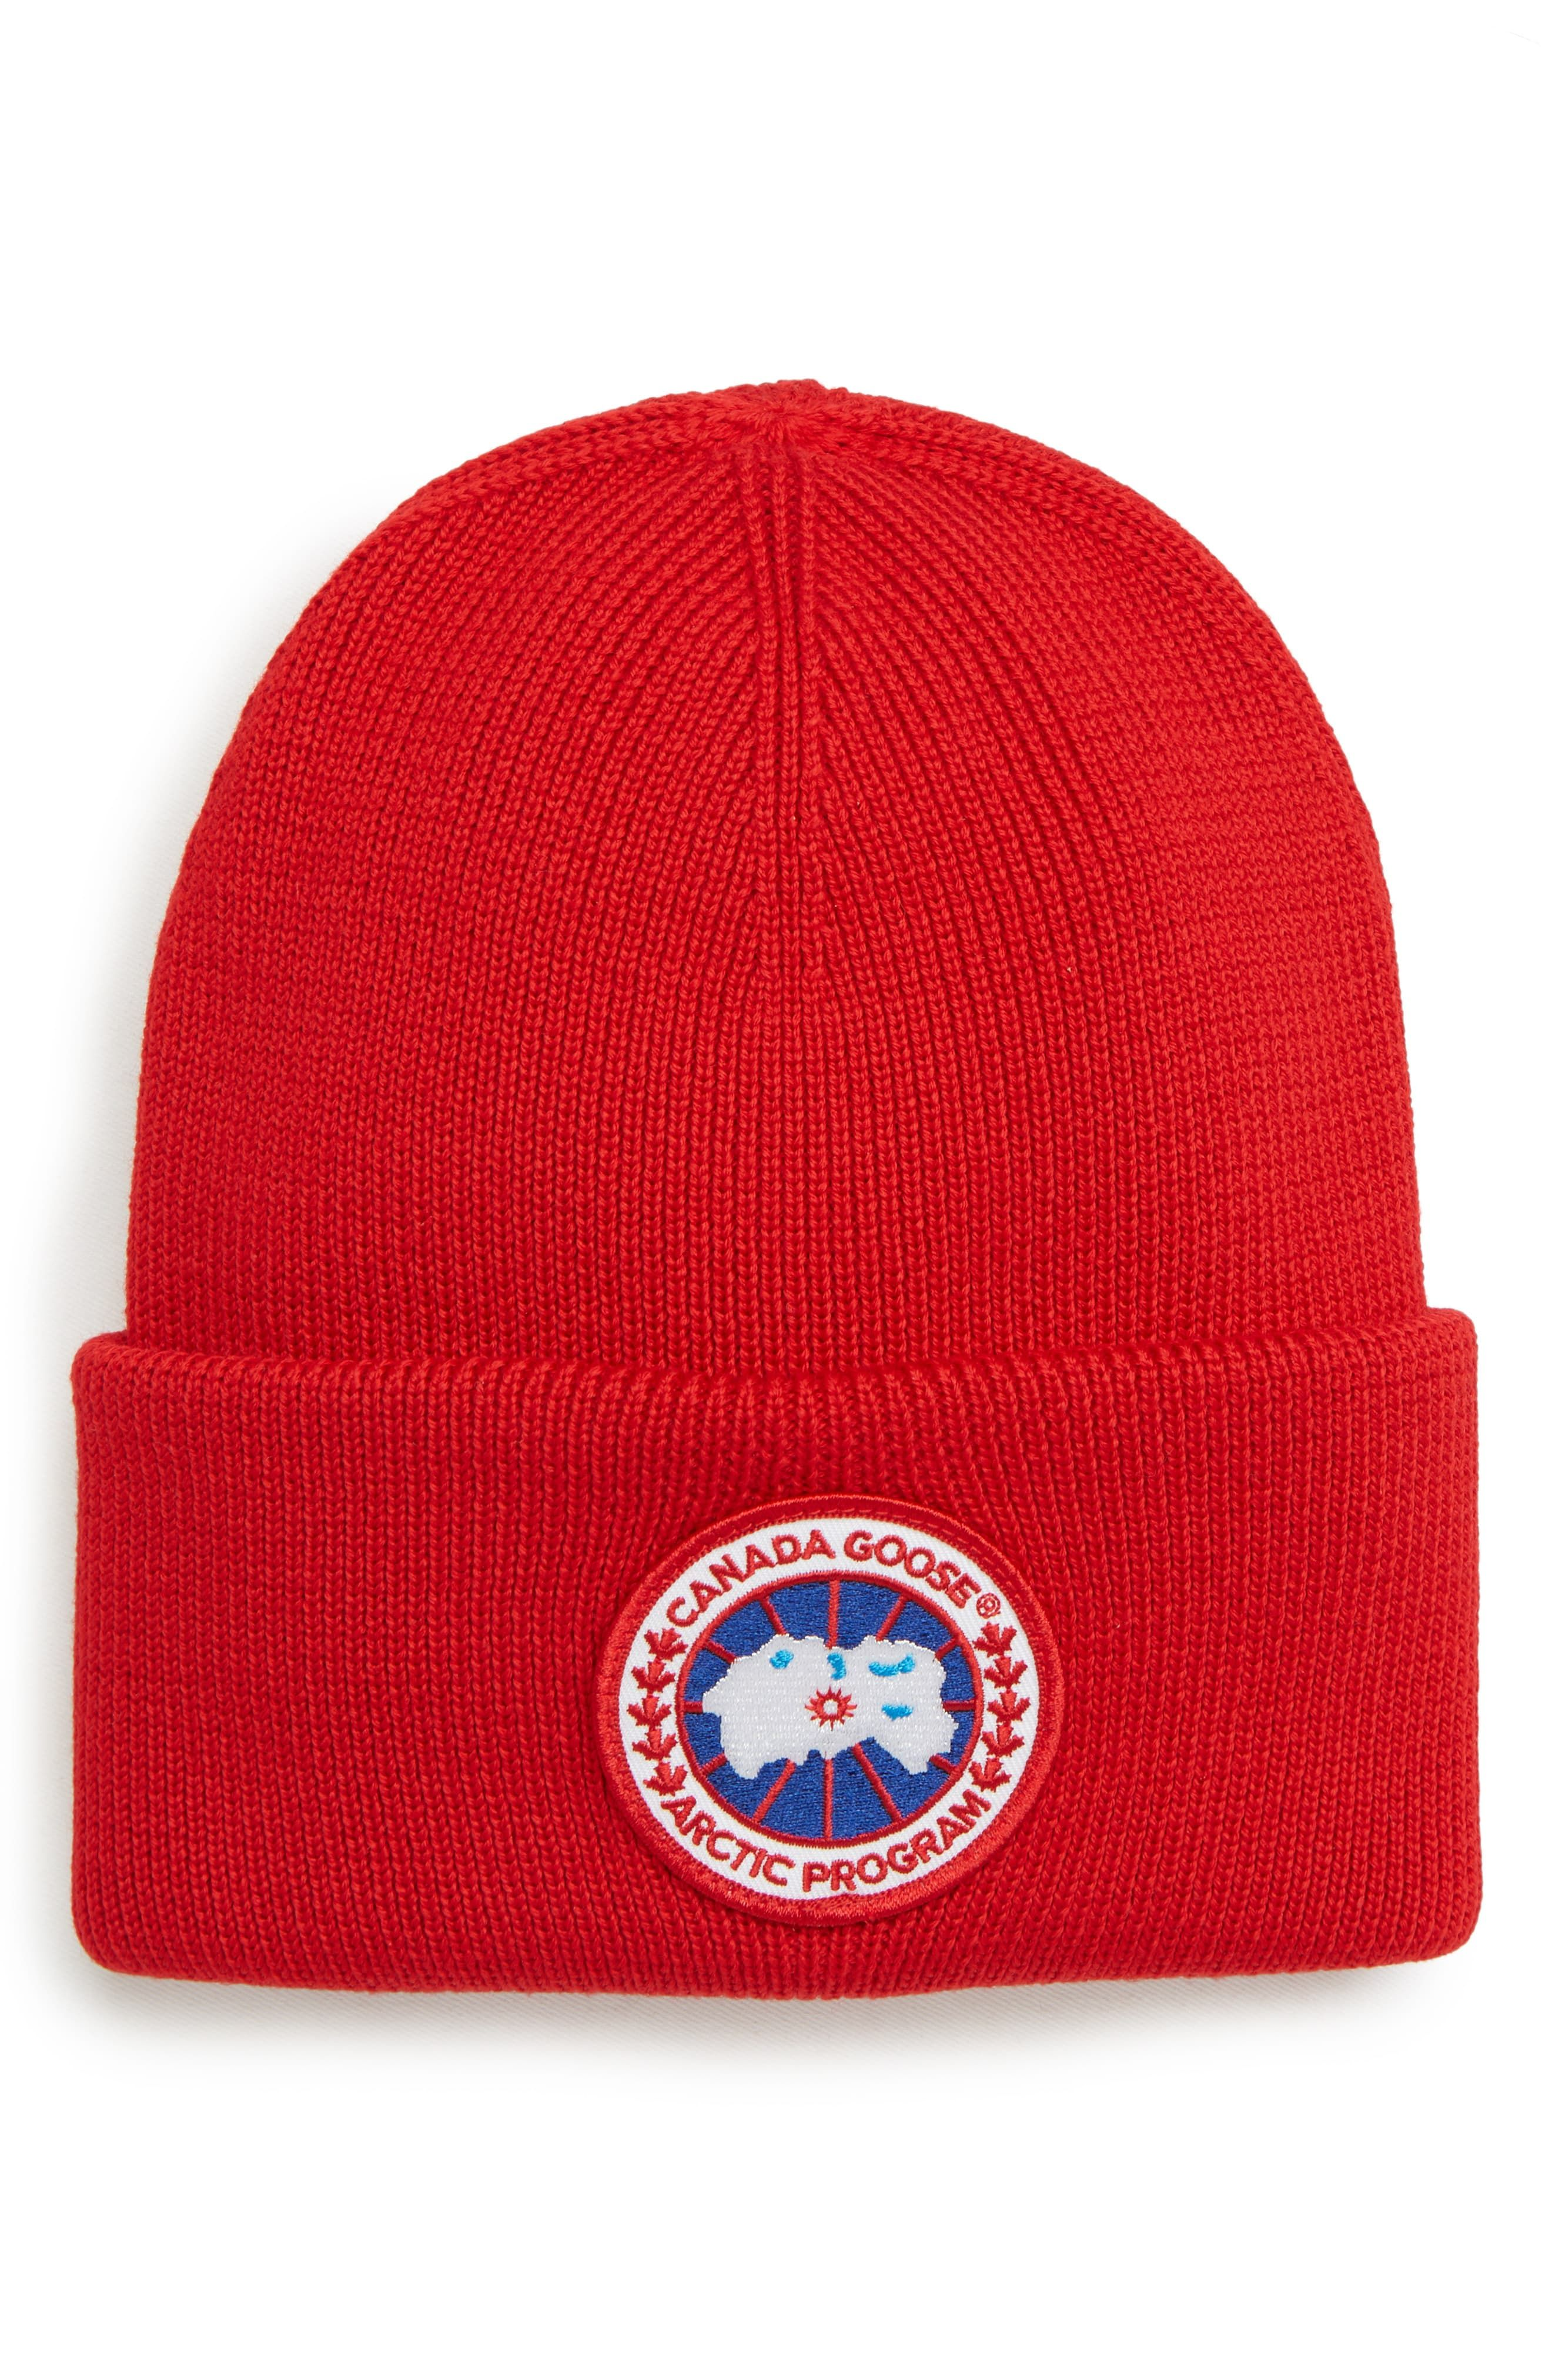 65f133a44 Canada Goose Arctic Disc Toque Beanie - Grey in 2019 | Products ...